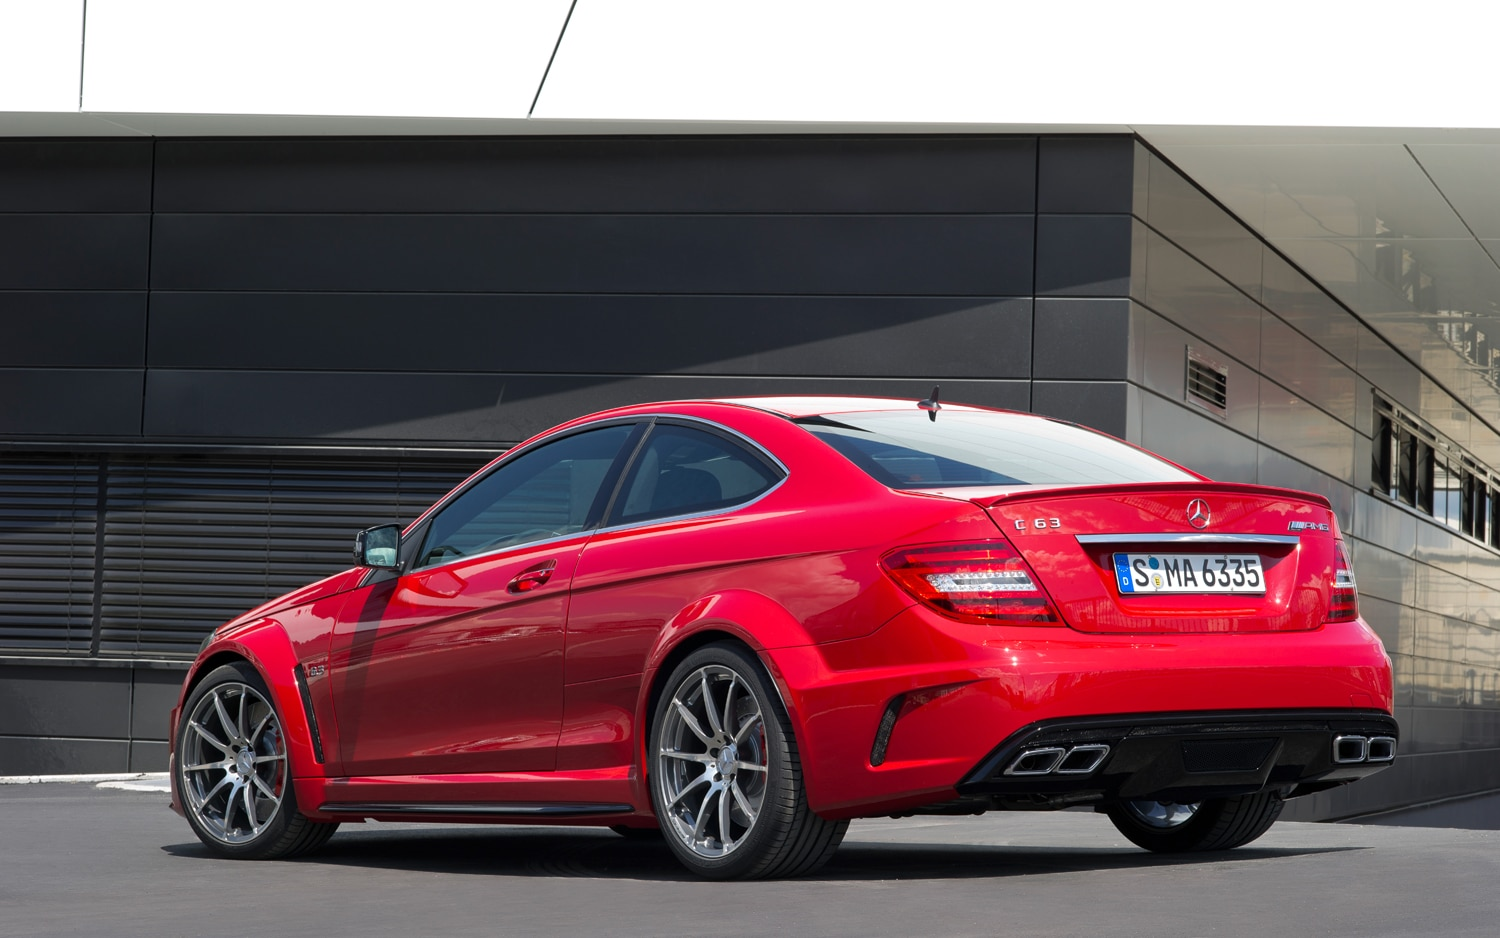 2016 mercedes c63 amg coupe 0 60 – Fiat World Test Drive